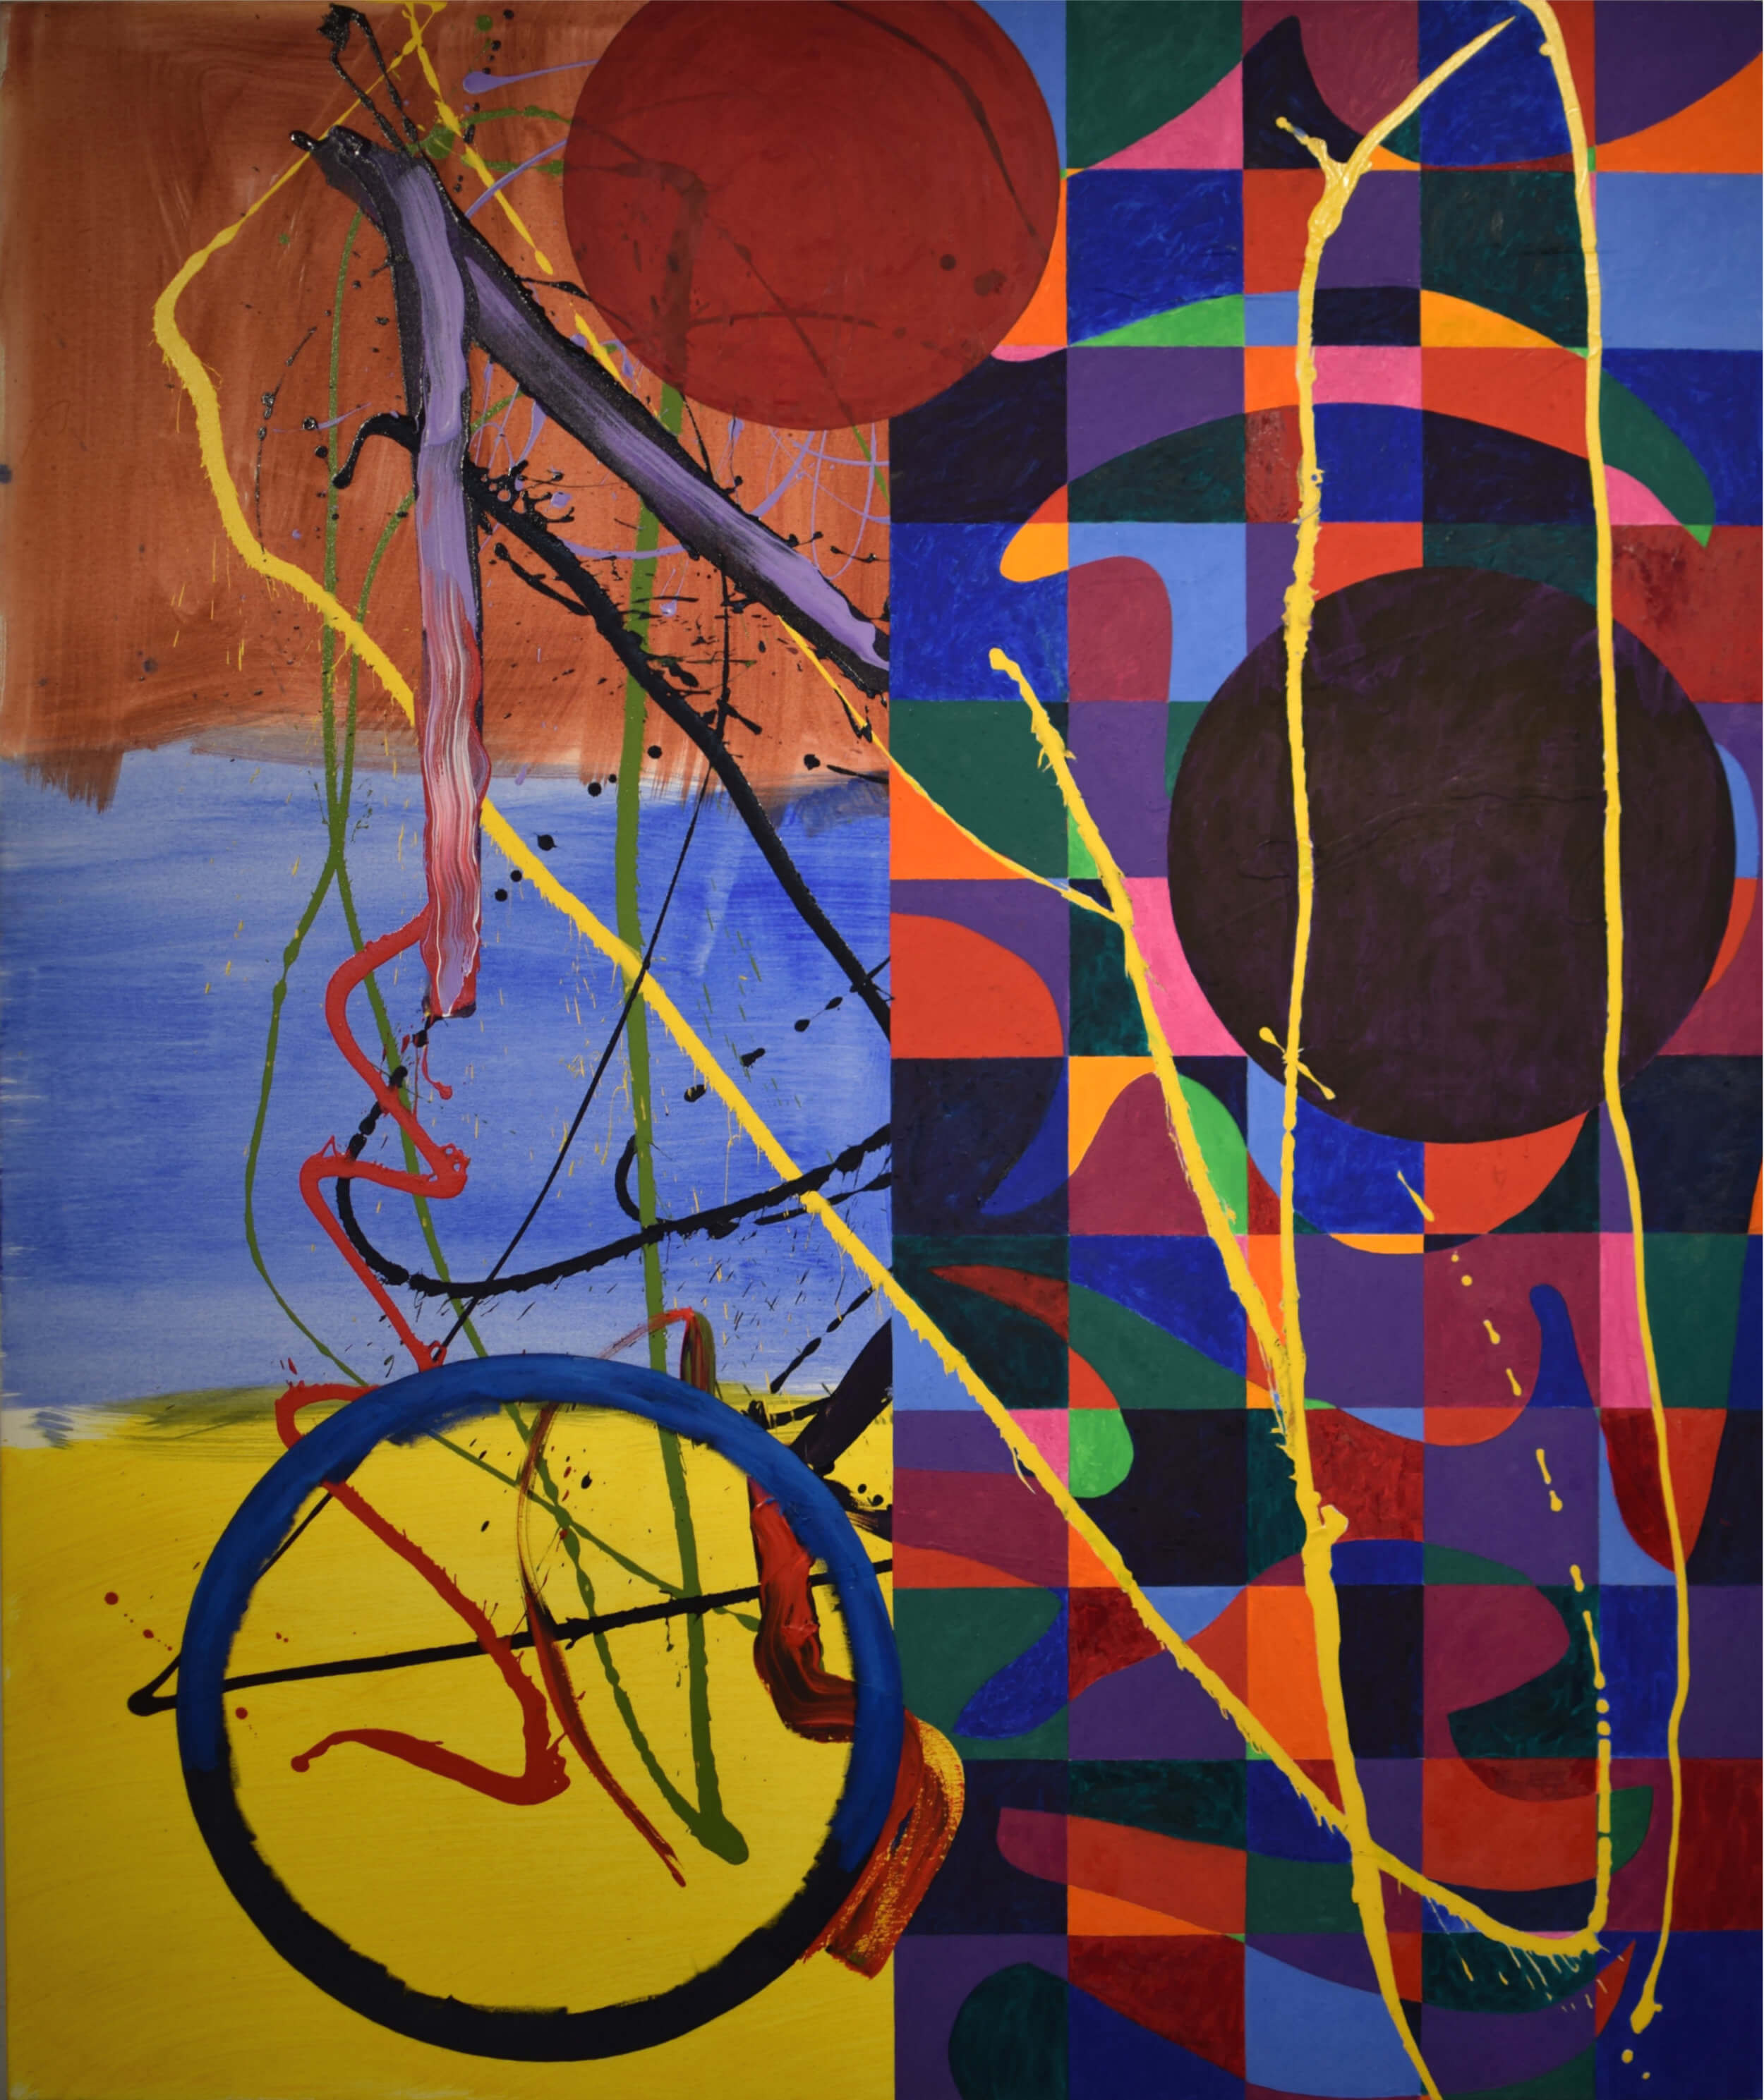 Dana Gordon, Coming To, 2015-16, 72 x 60 inches, oil and acrylic on canvas (courtesy of the artist)